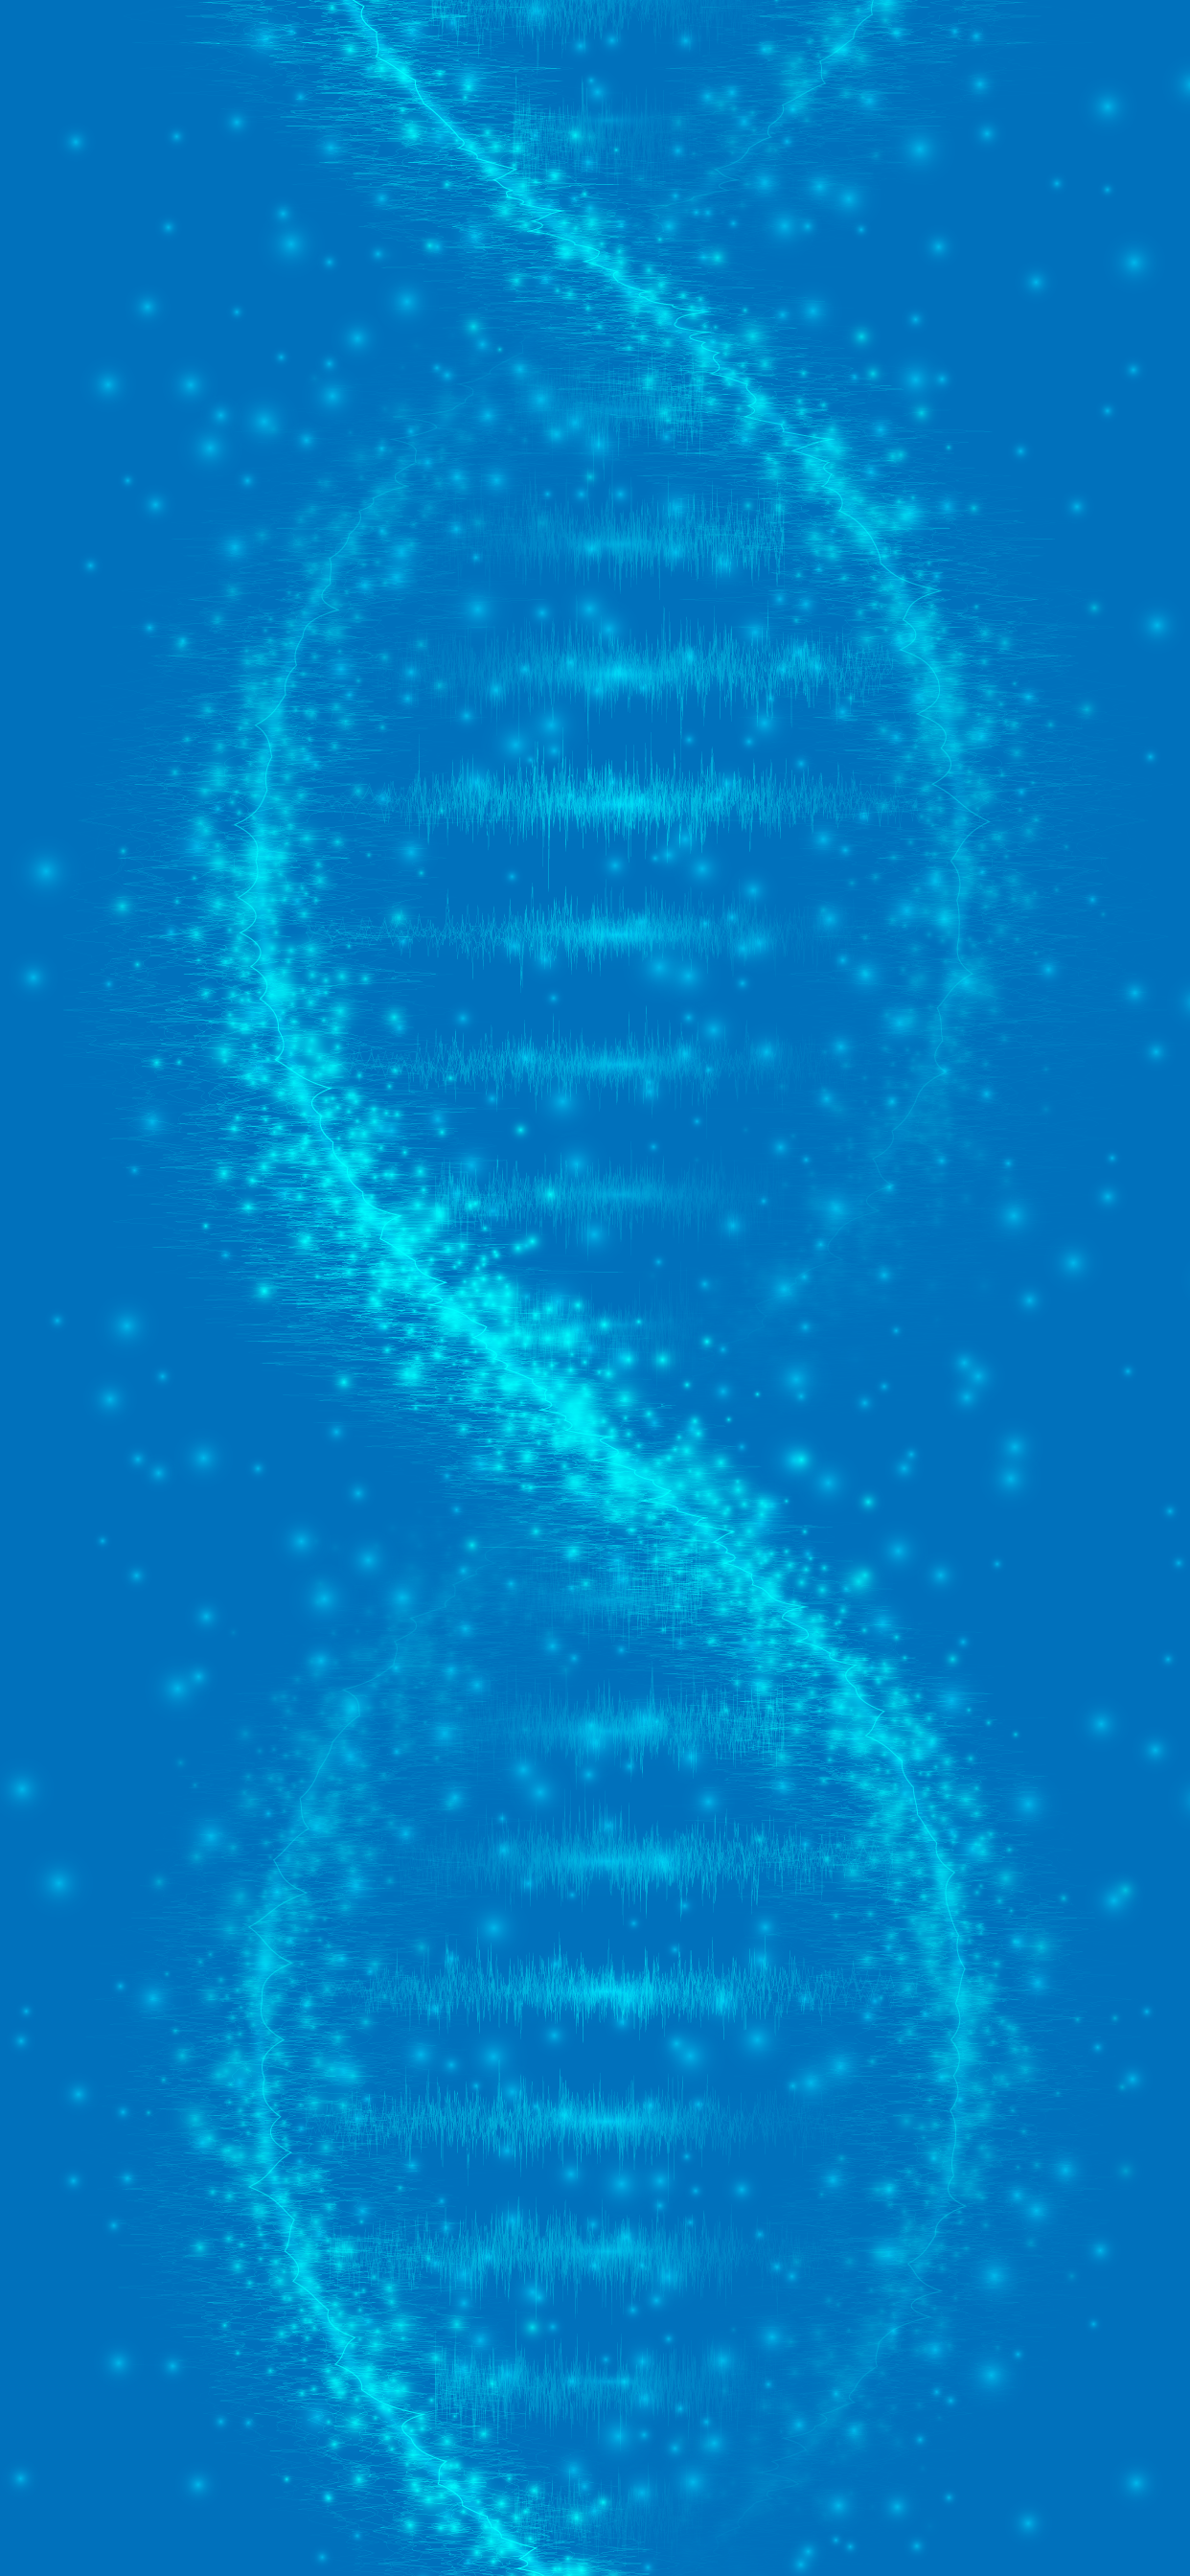 medicine dna science wallpaper hd for phone